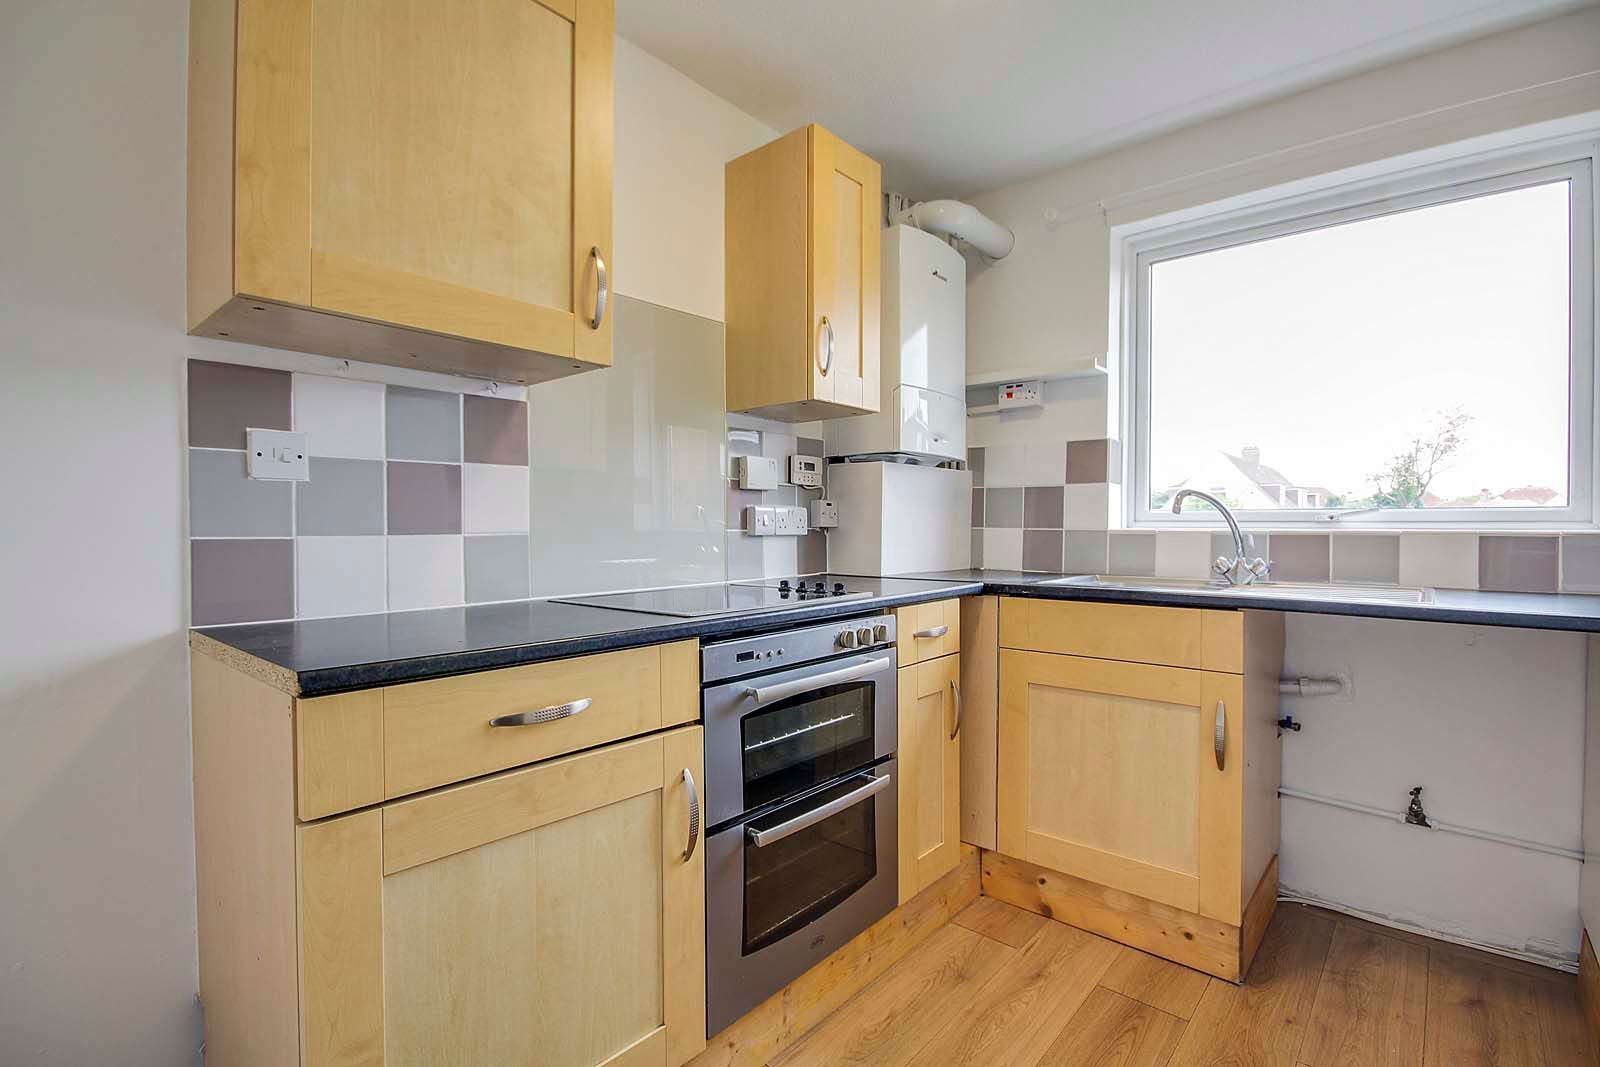 2 bed house for sale in Church Way COMP Jan 2019 4